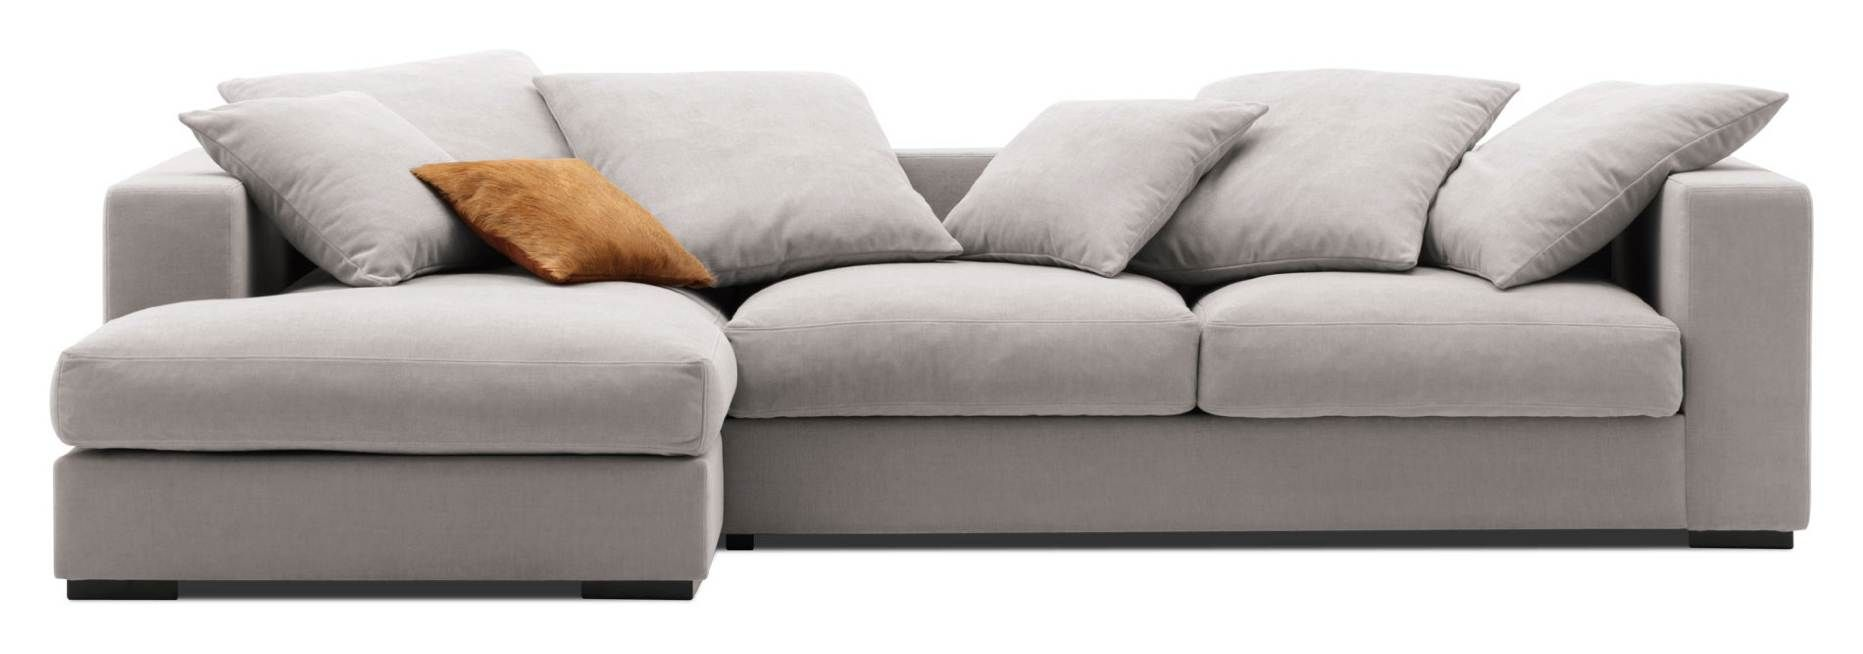 Lovely Modern Cenova Sofas   Quality From BoConcept Furniture Sydney Australia